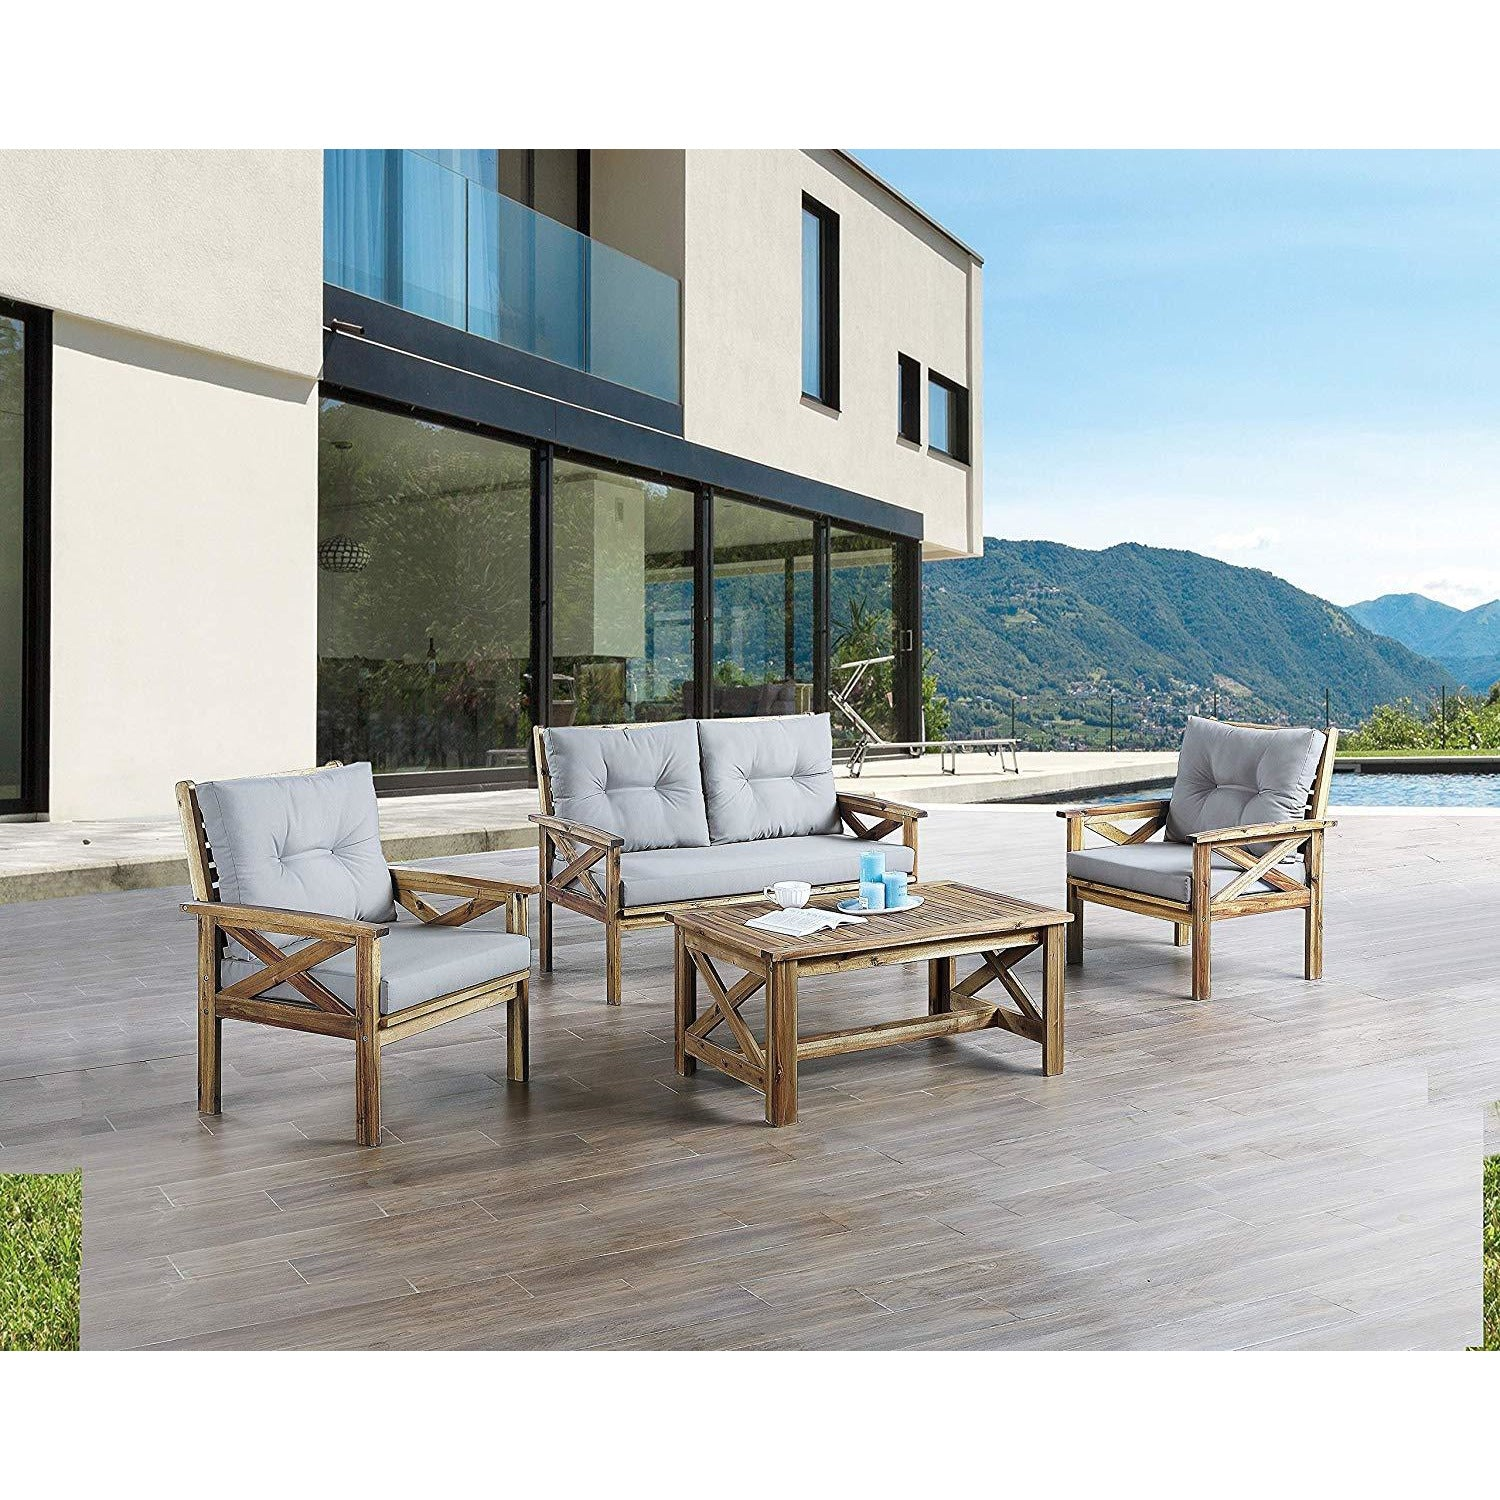 Dim Gray Acacia Wood 3 Pieces Outdoor Patio Conversation Set Bistro Chairs with Table